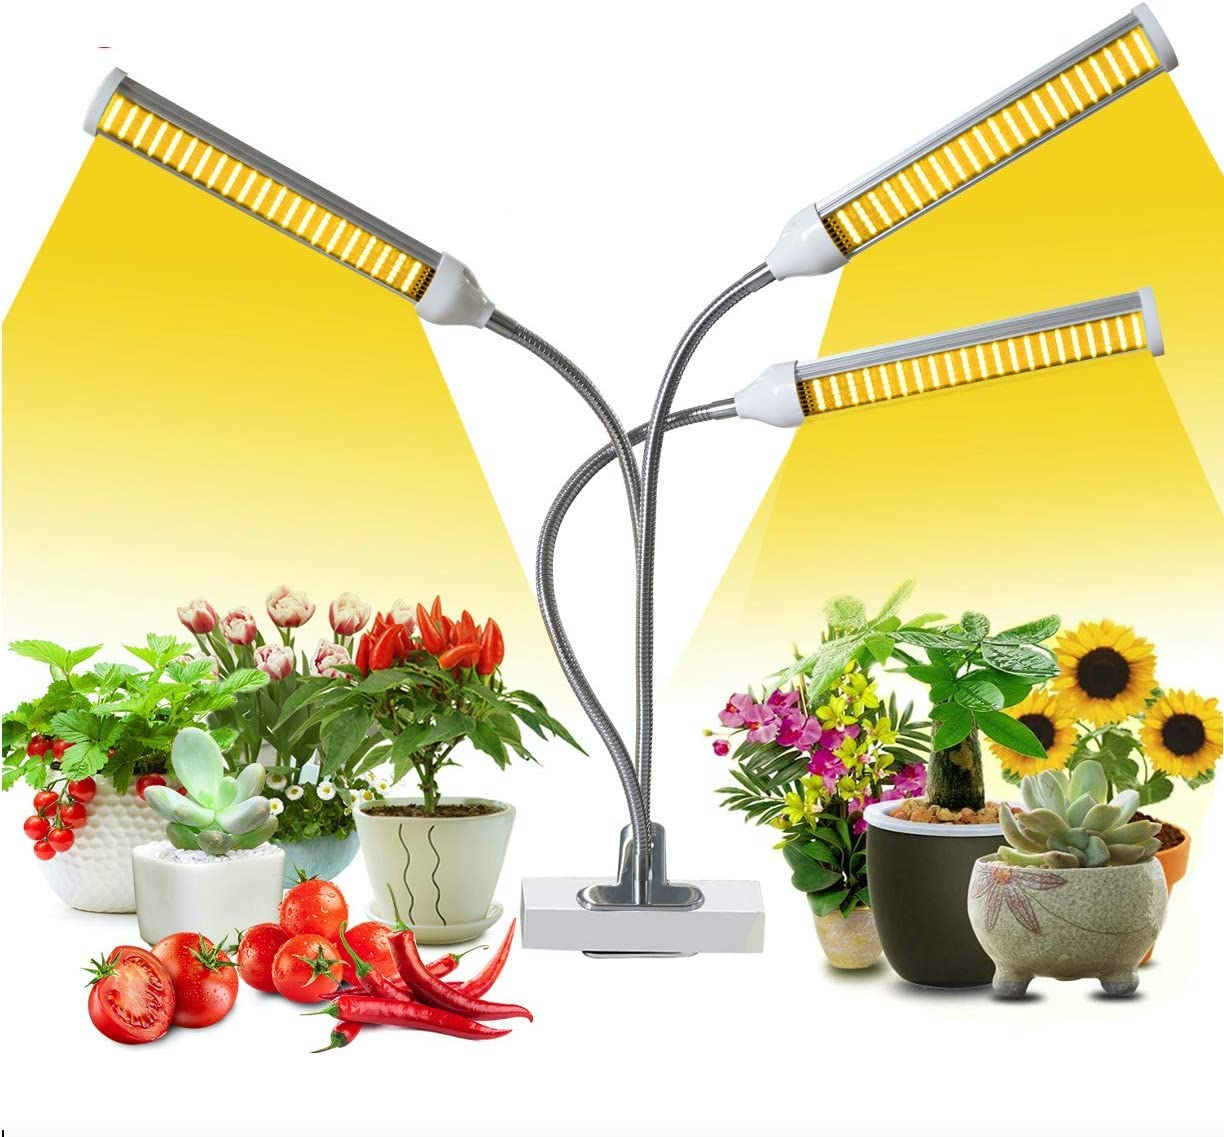 150W Tri Head Sunlike Bright Full Spectrum LED Plant Grow Light for Indoor Plants, Adjustable Bulb Arms, Succulent Plant Growth Lamp Flowering with Dimmer & Auto Timer Function